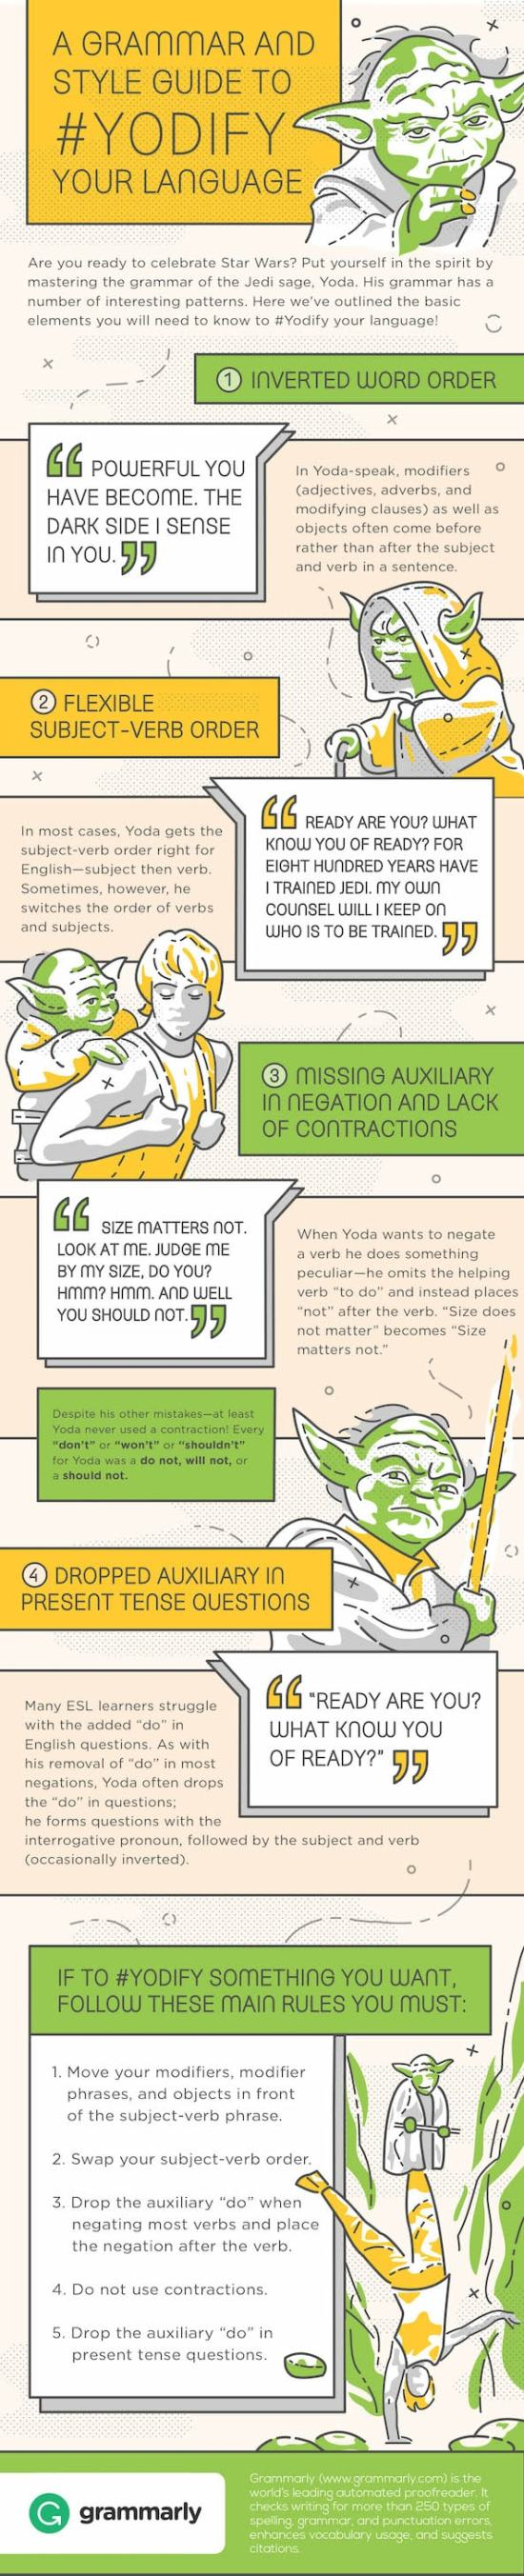 Infographic: How to #Yodafy your Grammar Infographic